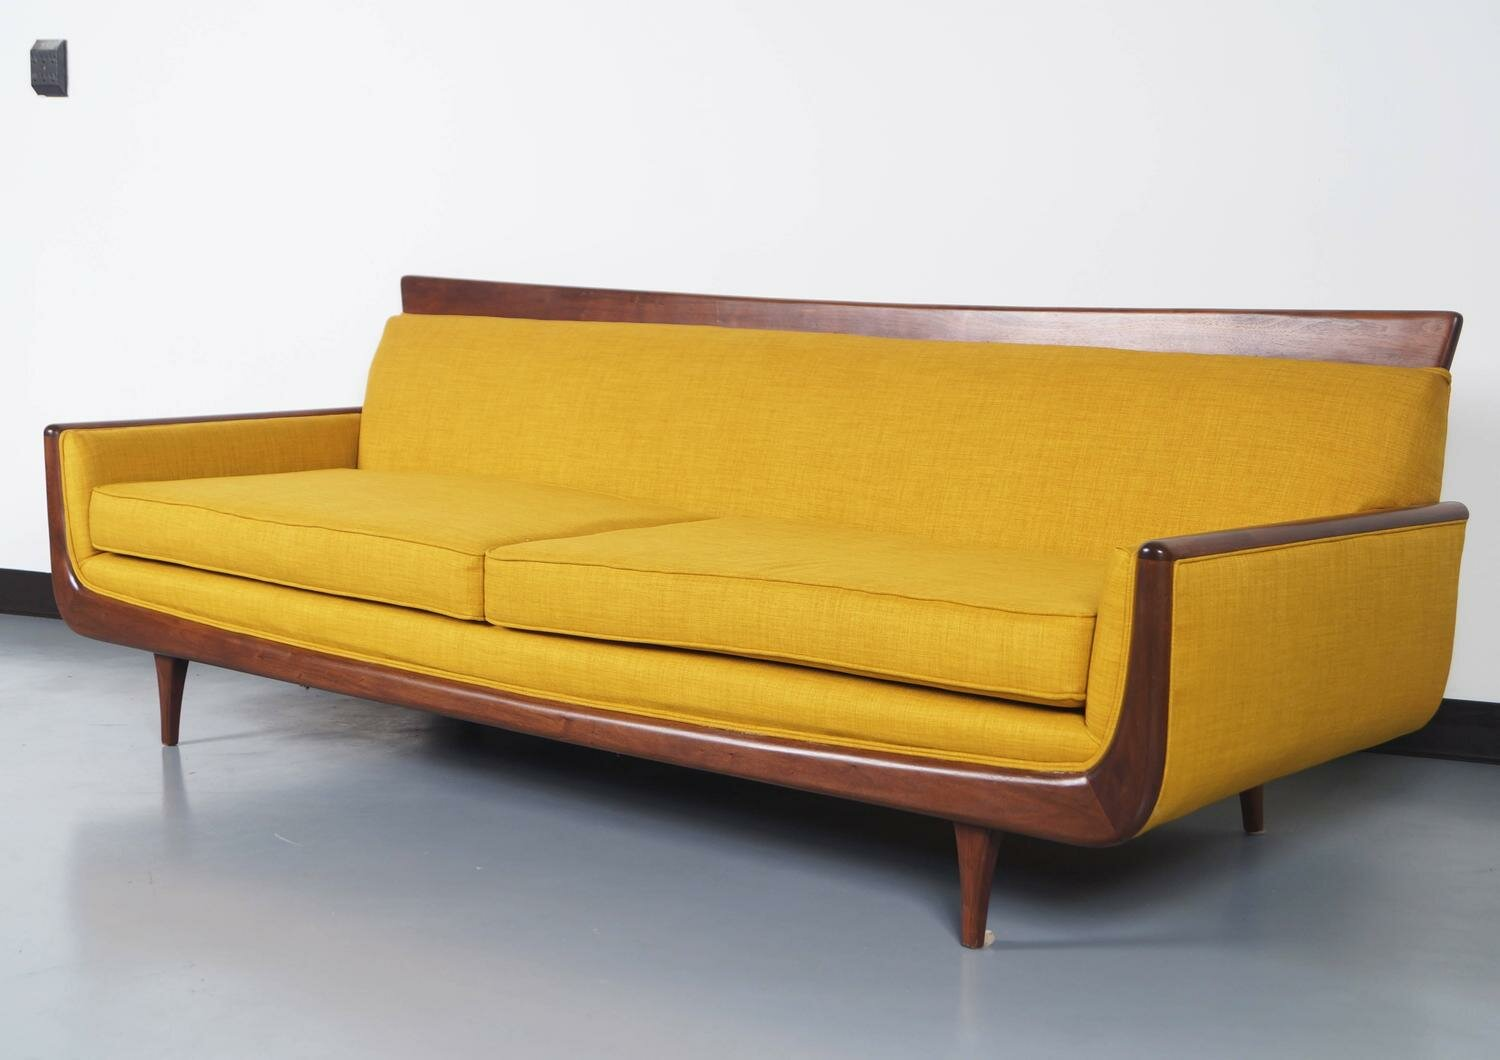 Midcentury modern sofas thesofa for New mid century modern furniture